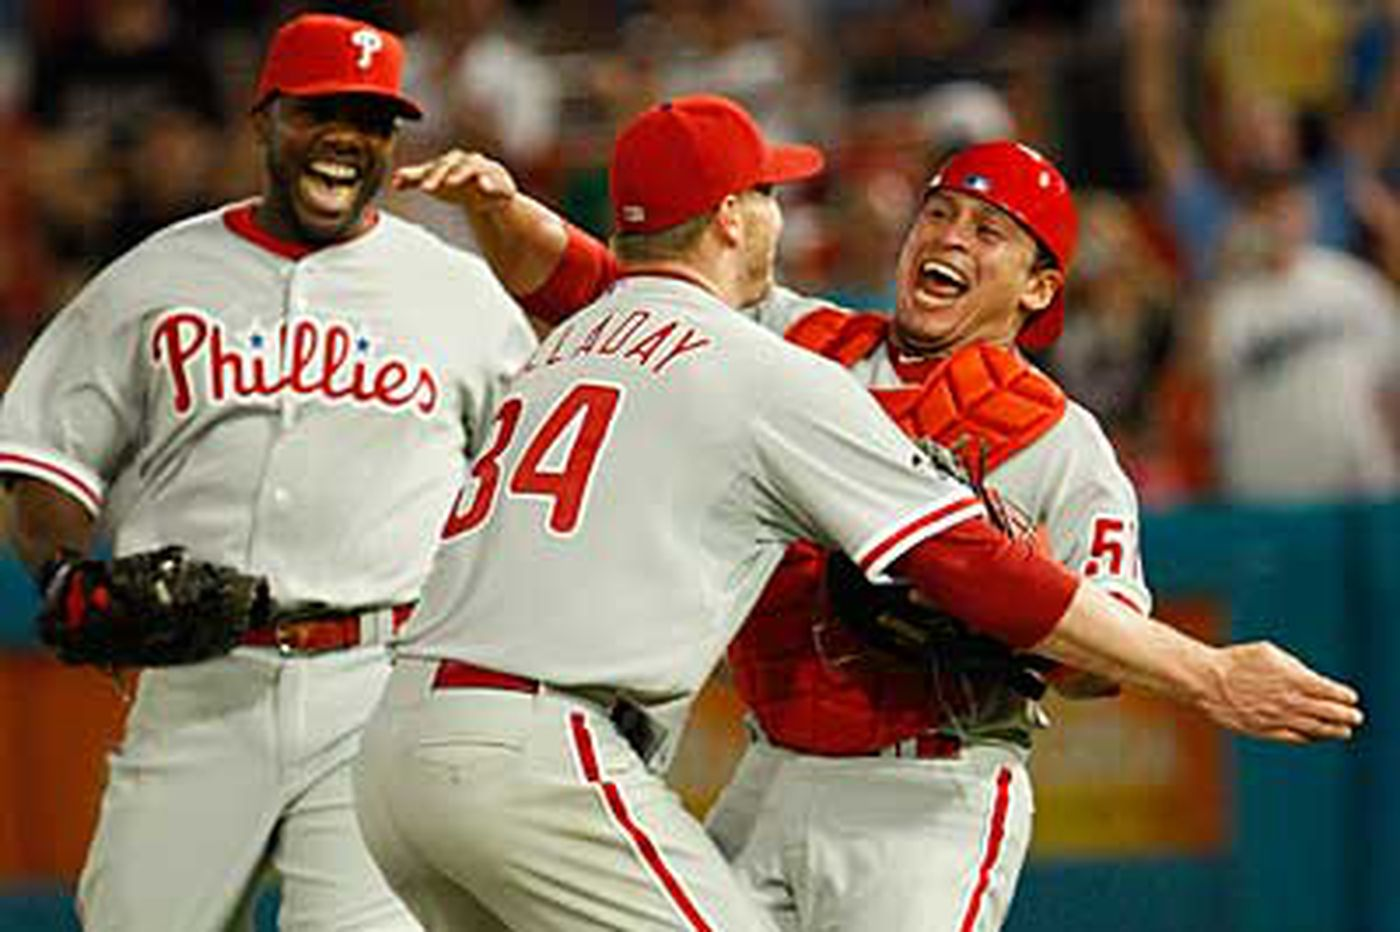 Ten years later, Roy Halladay's perfect game lives on with the Phillies, Marlins, and so many others who were there